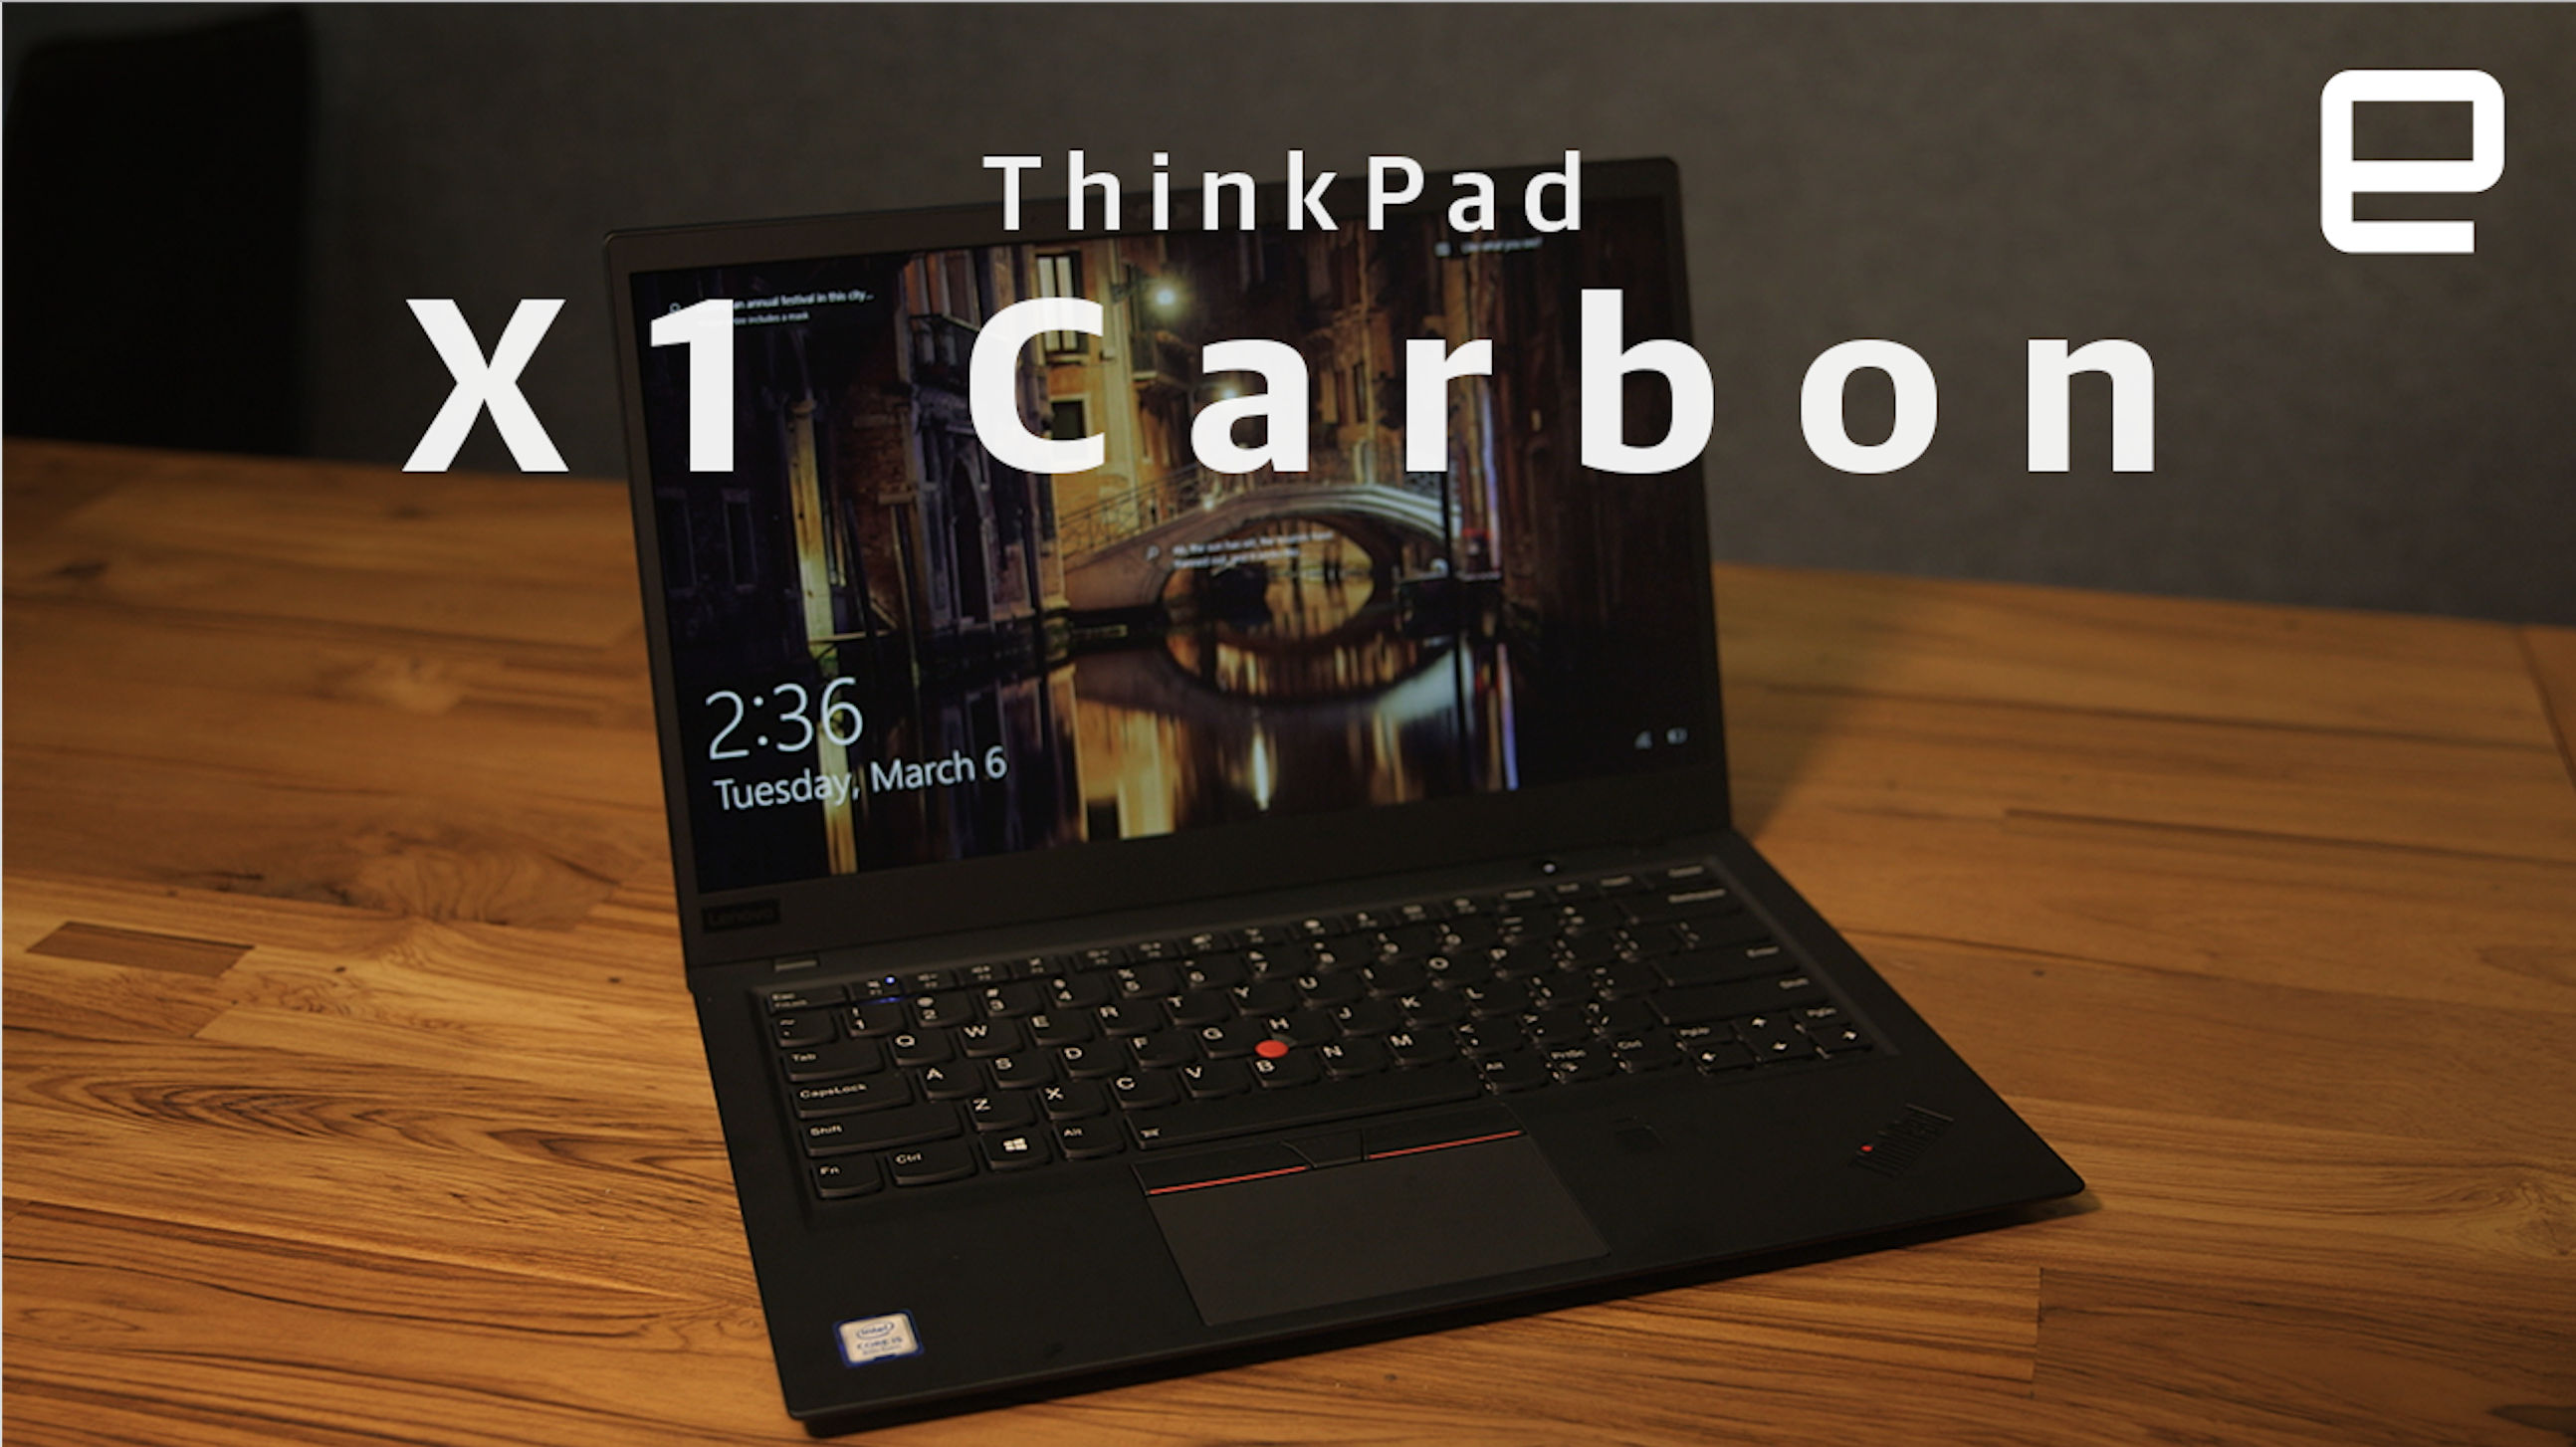 ThinkPad X1 Carbon review (2018): The best business laptop